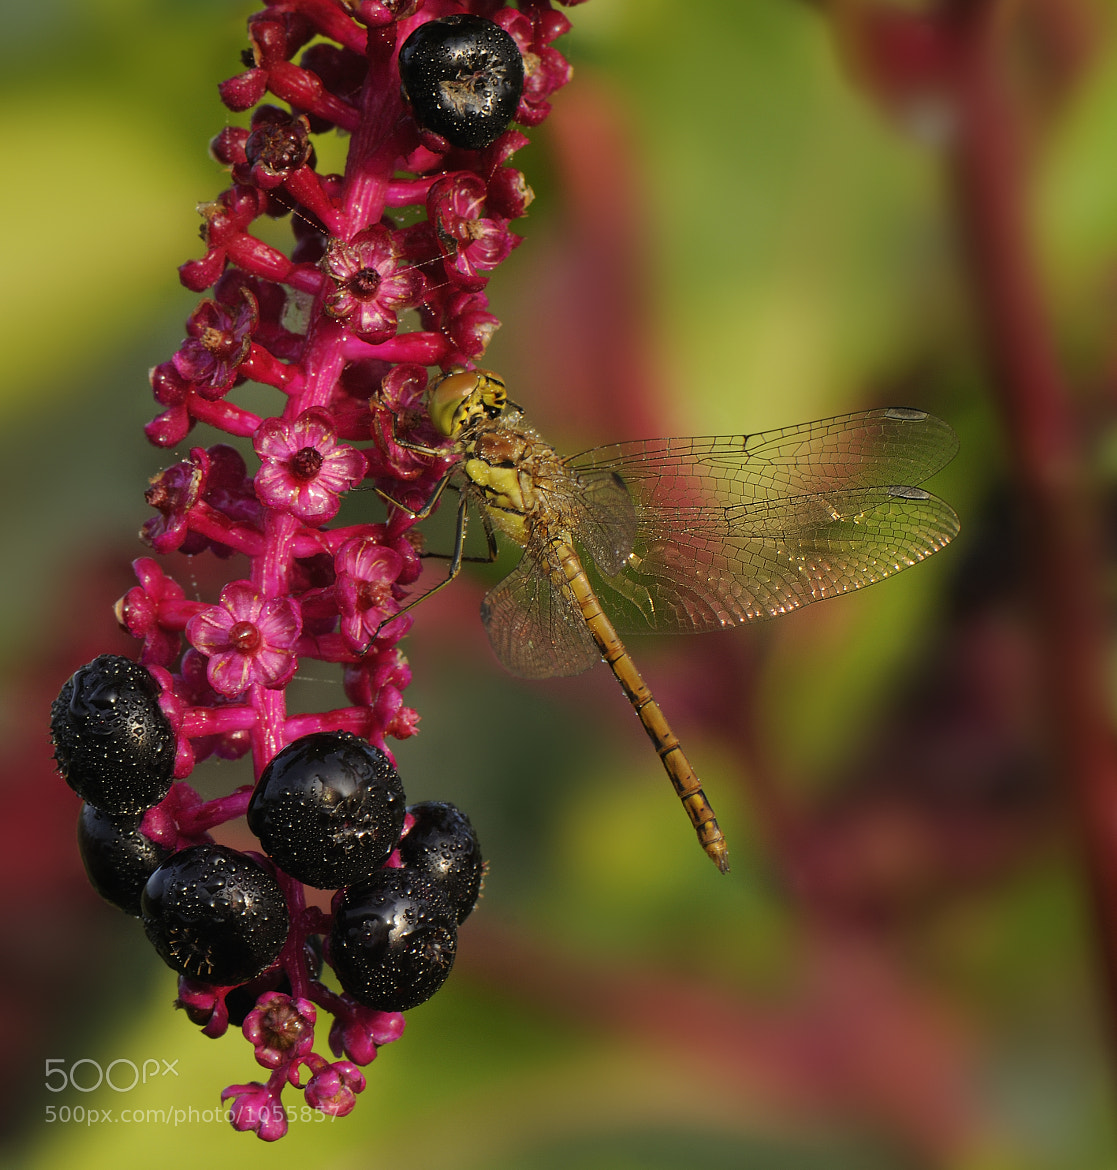 Photograph dragonfly by mauro maione on 500px